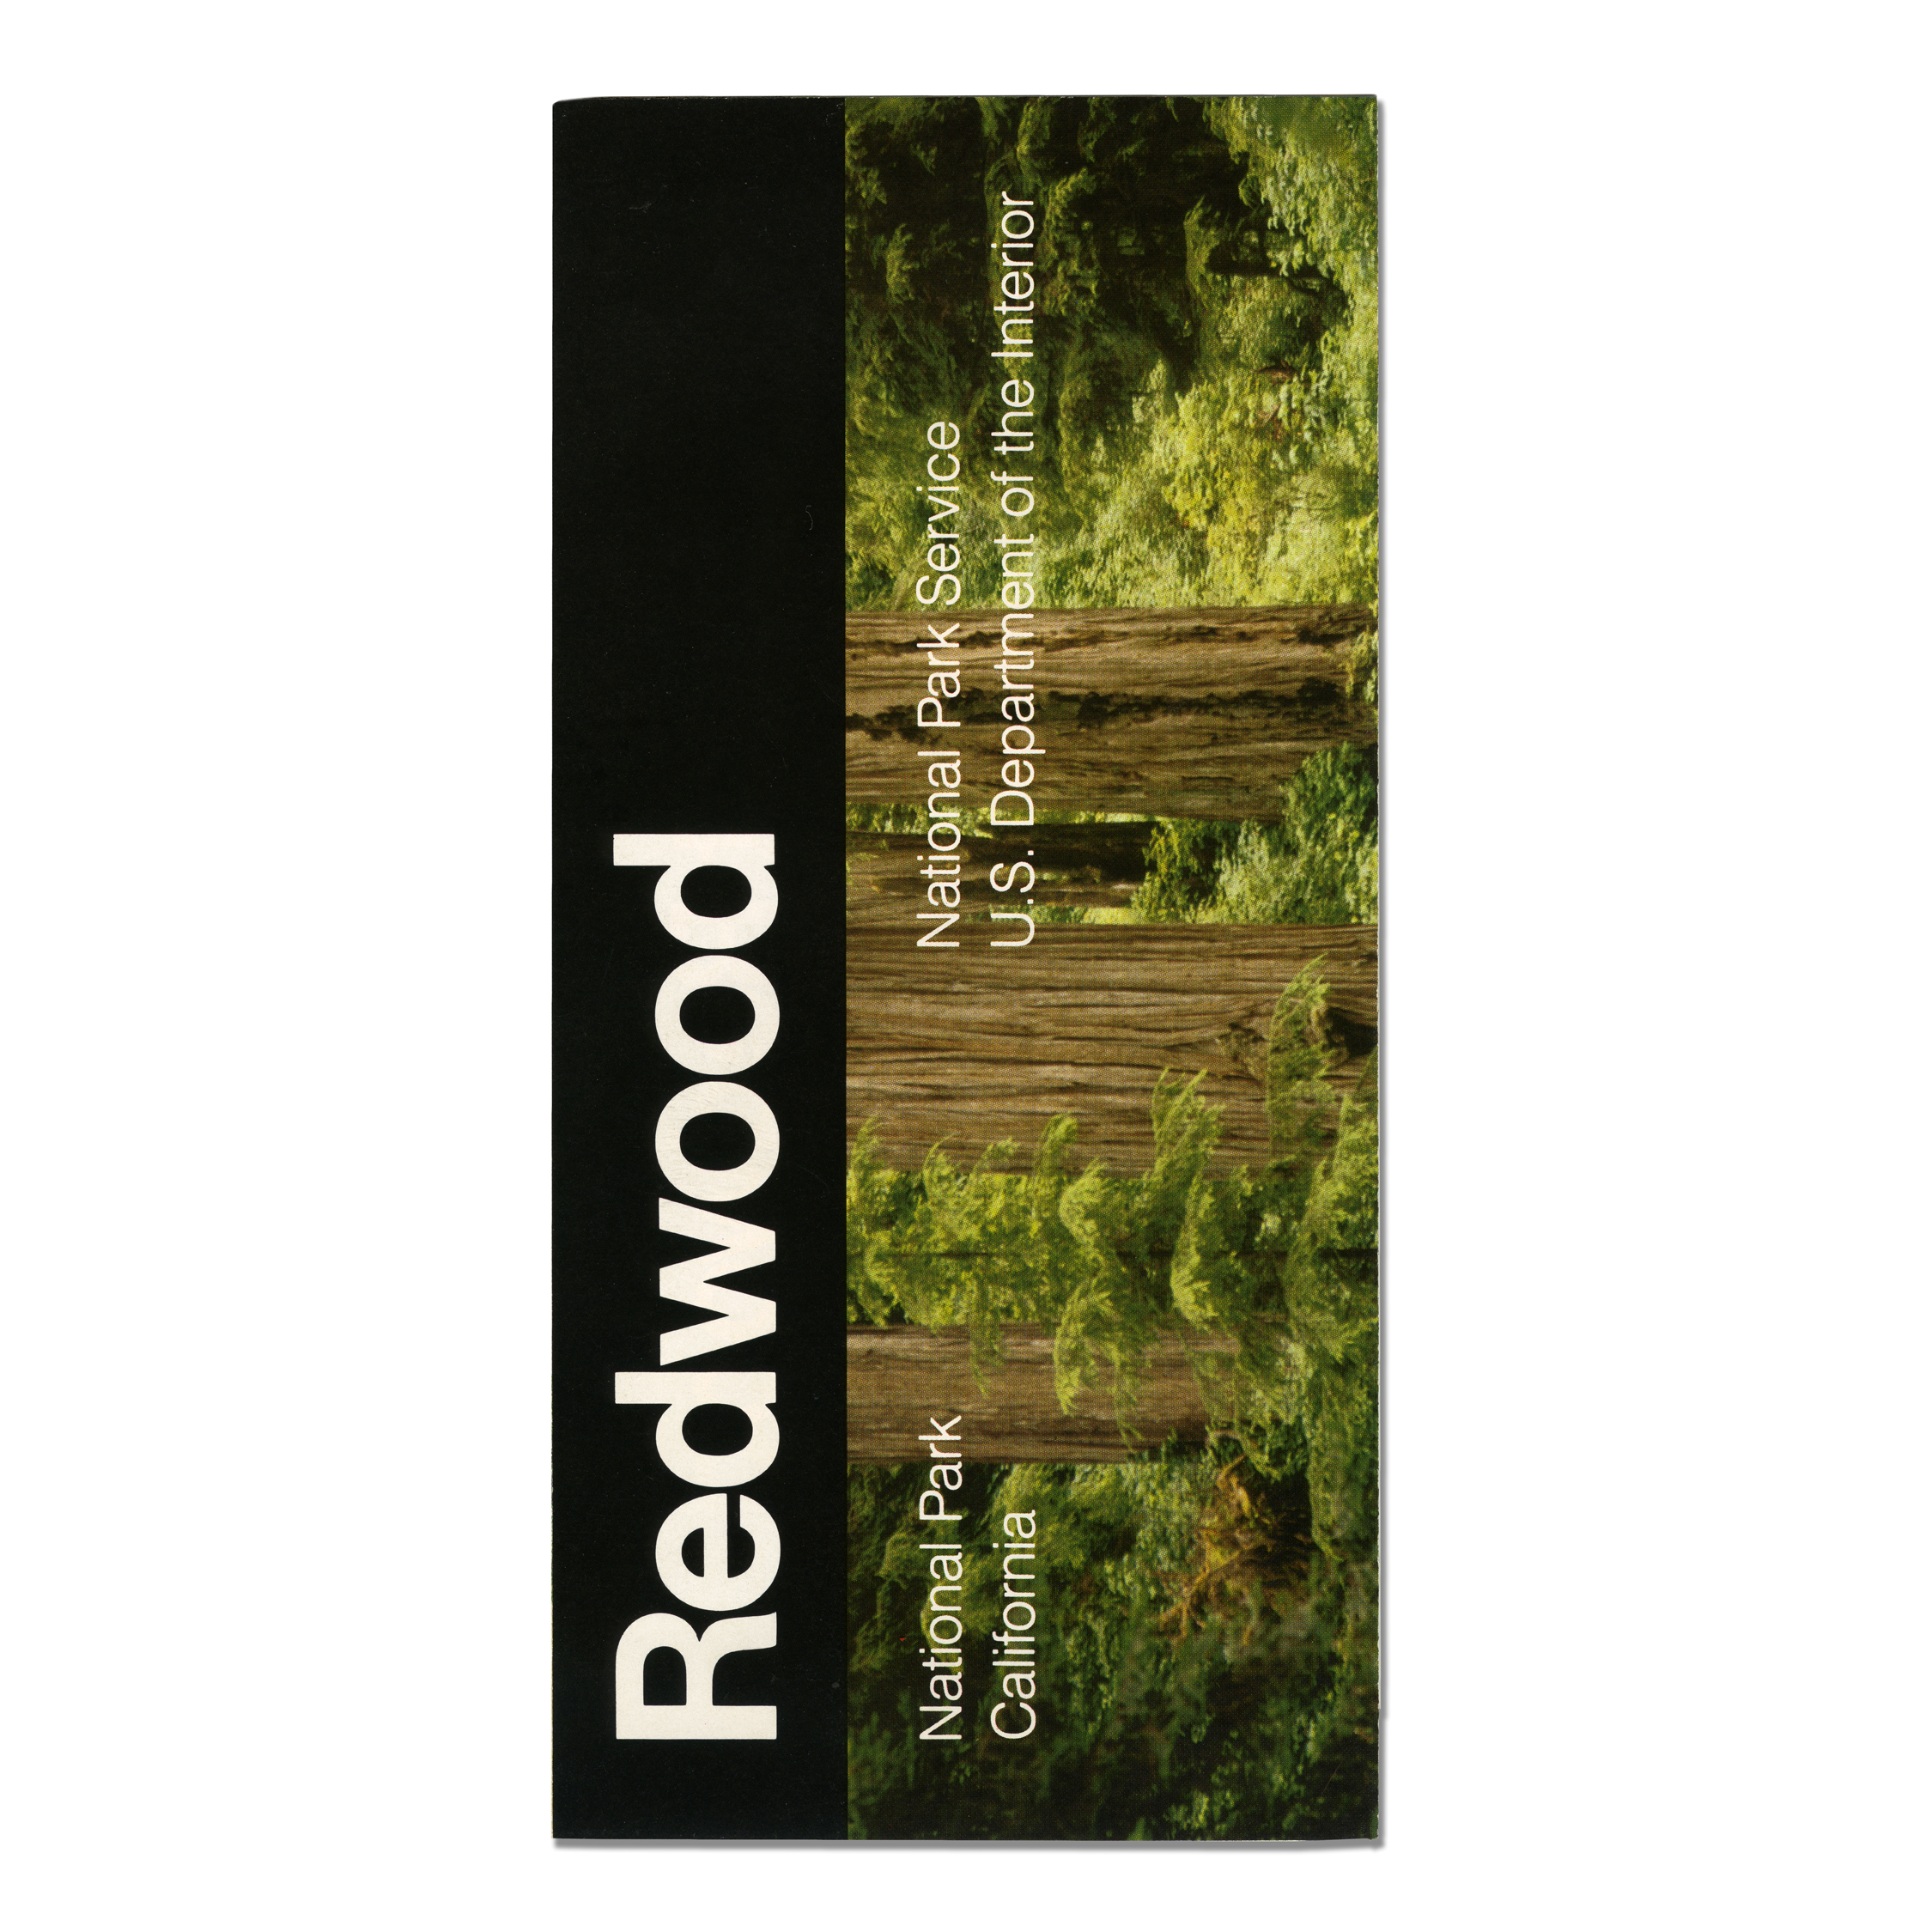 1981_redwood_national_park_brochure.jpg